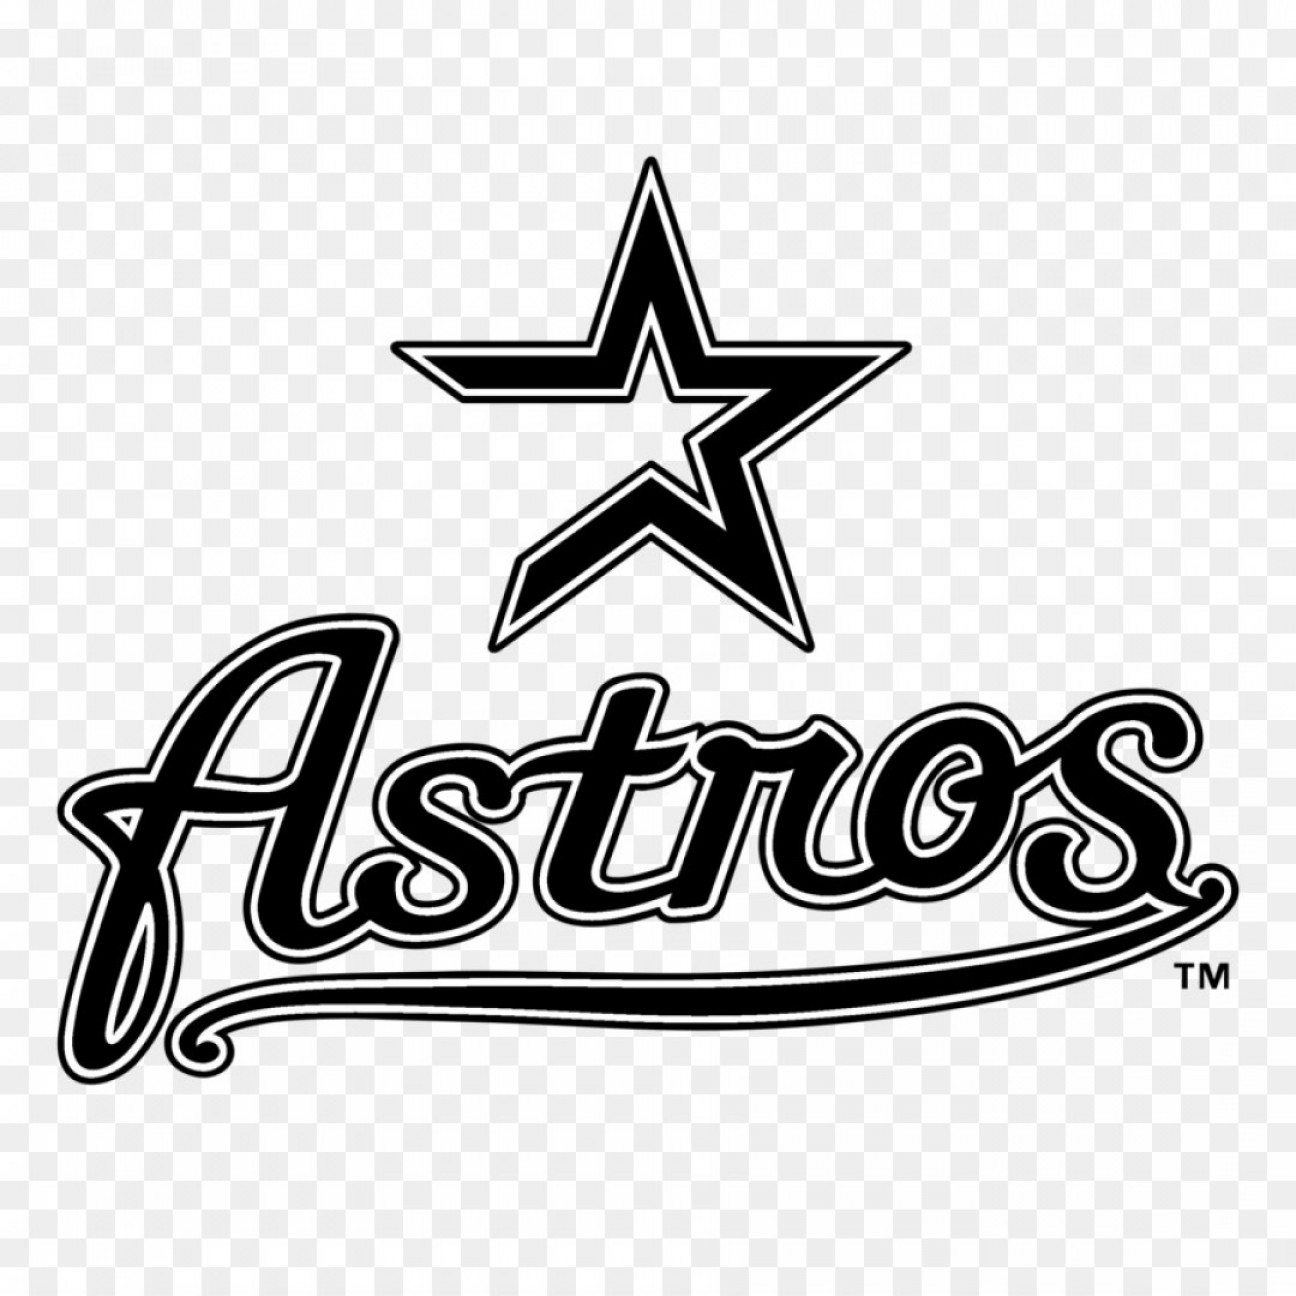 Png Houston Astros Logo Mlb Decal Houston Astros Log.